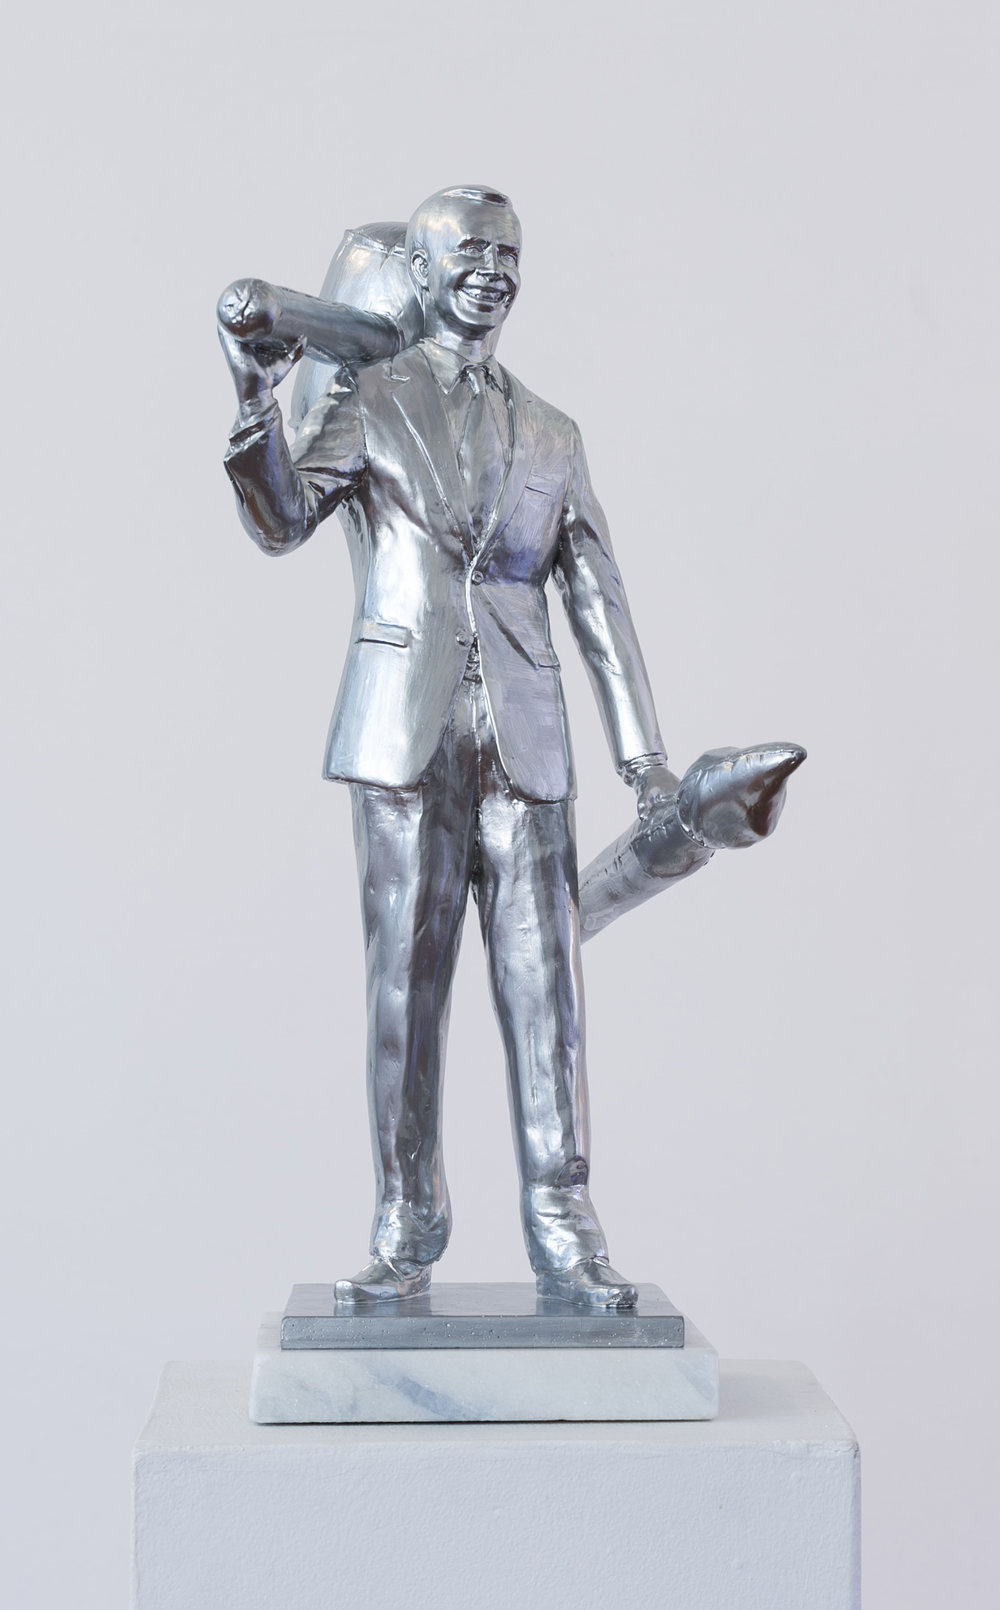 Jonathan van der Walt  The Renaissance Brand: Jeff Koons  Resin, edition of 18  30 x 20 x 52 cm